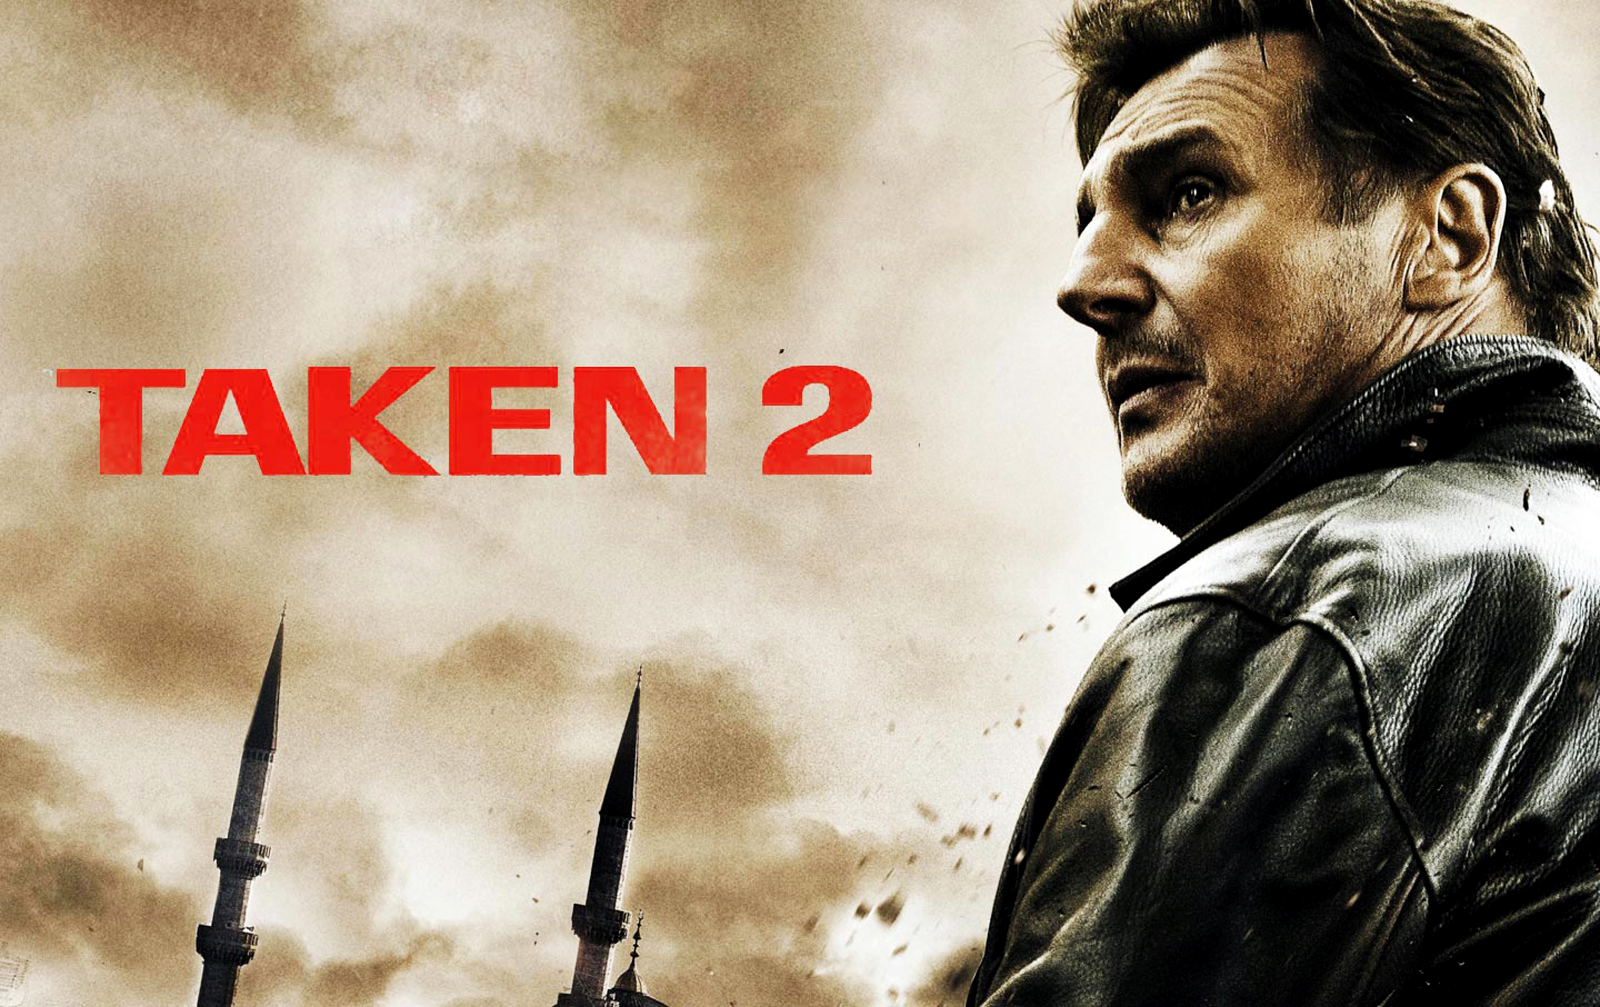 Taken 2 Movie 2012 HD Taken 2 Movie 2012 HD Wallpapers Poster Download Free Wallpapers 1600x1007 Movie-index.com